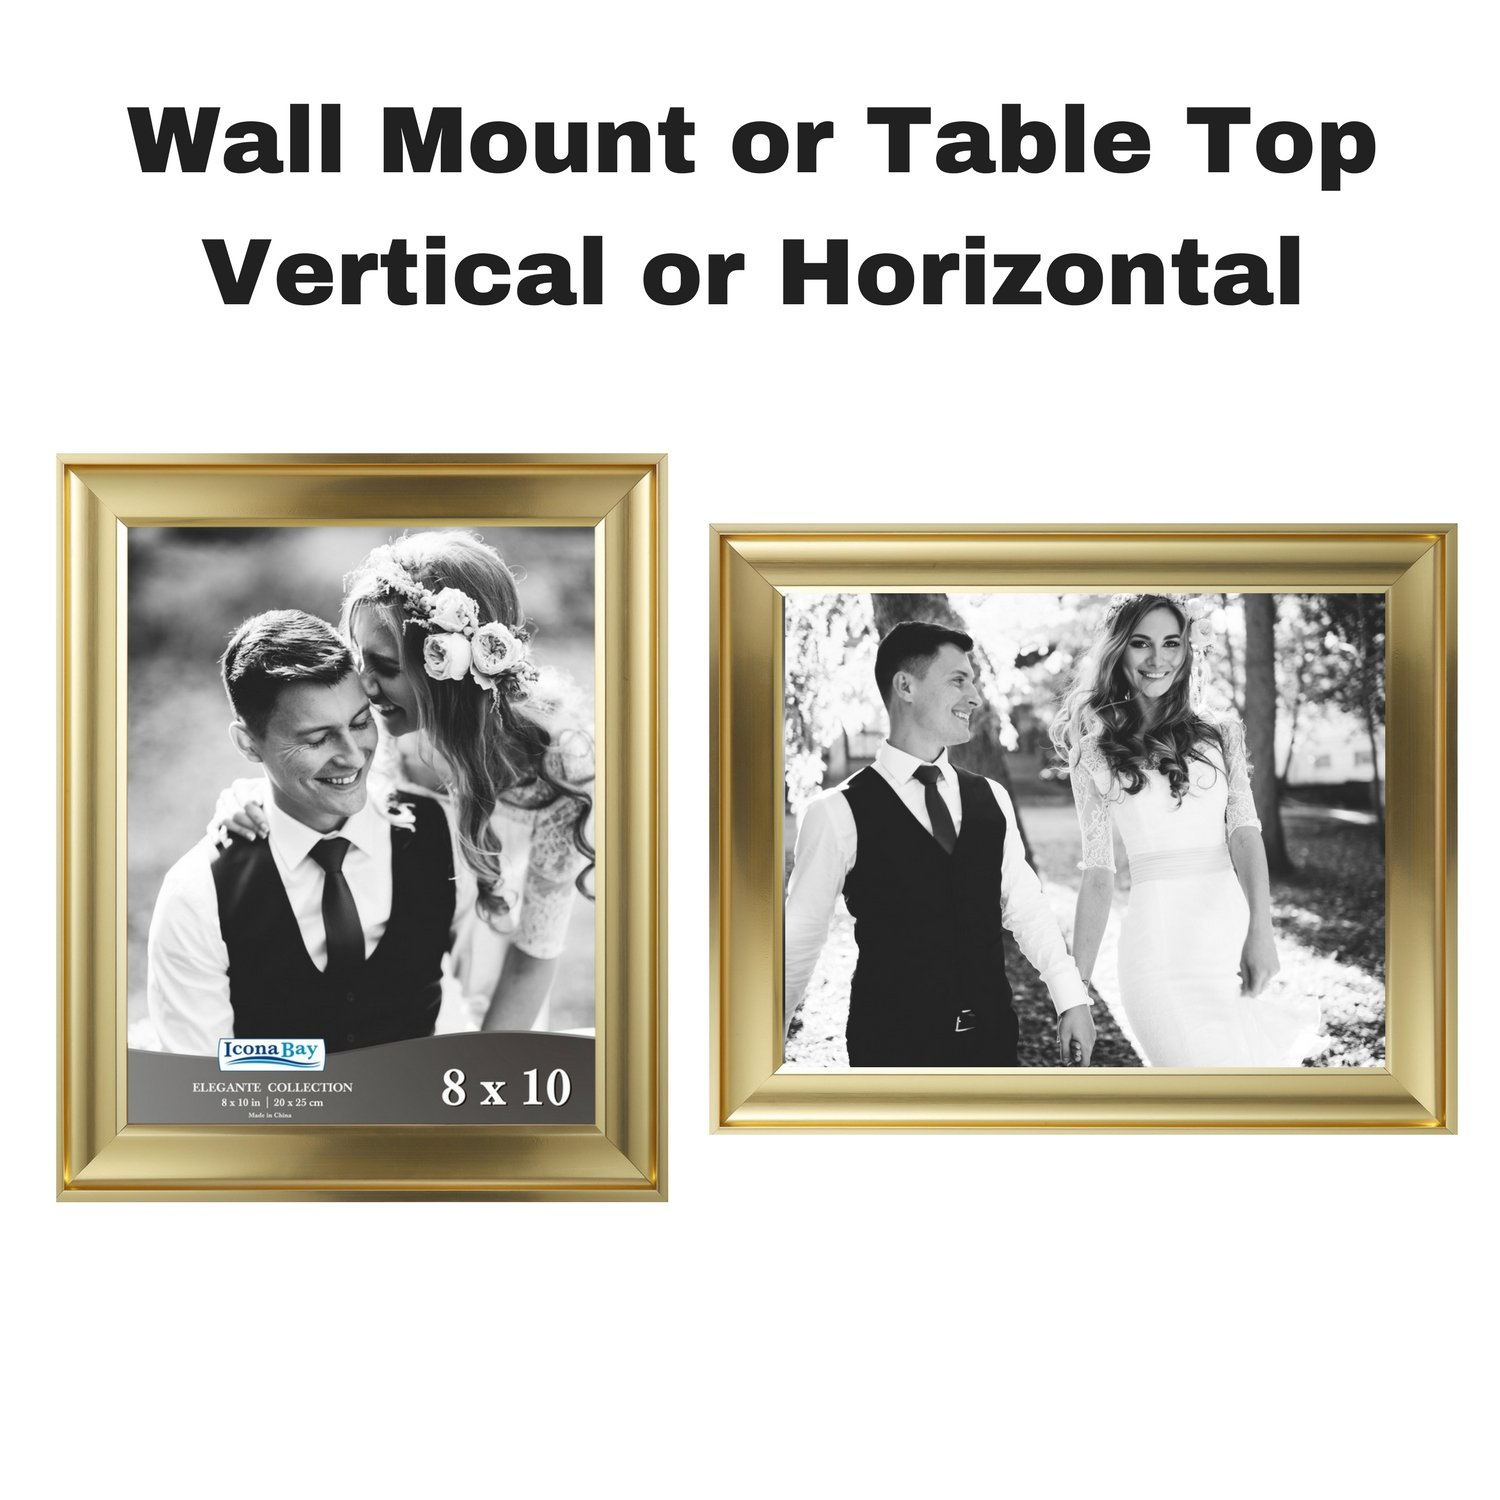 Icona Bay 8x10 Picture Frame (6 Pack, Gold), Gold Photo Frame 8 x 10, Wall Mount or Table Top, Set of 6 Elegante Collection by Icona Bay (Image #4)